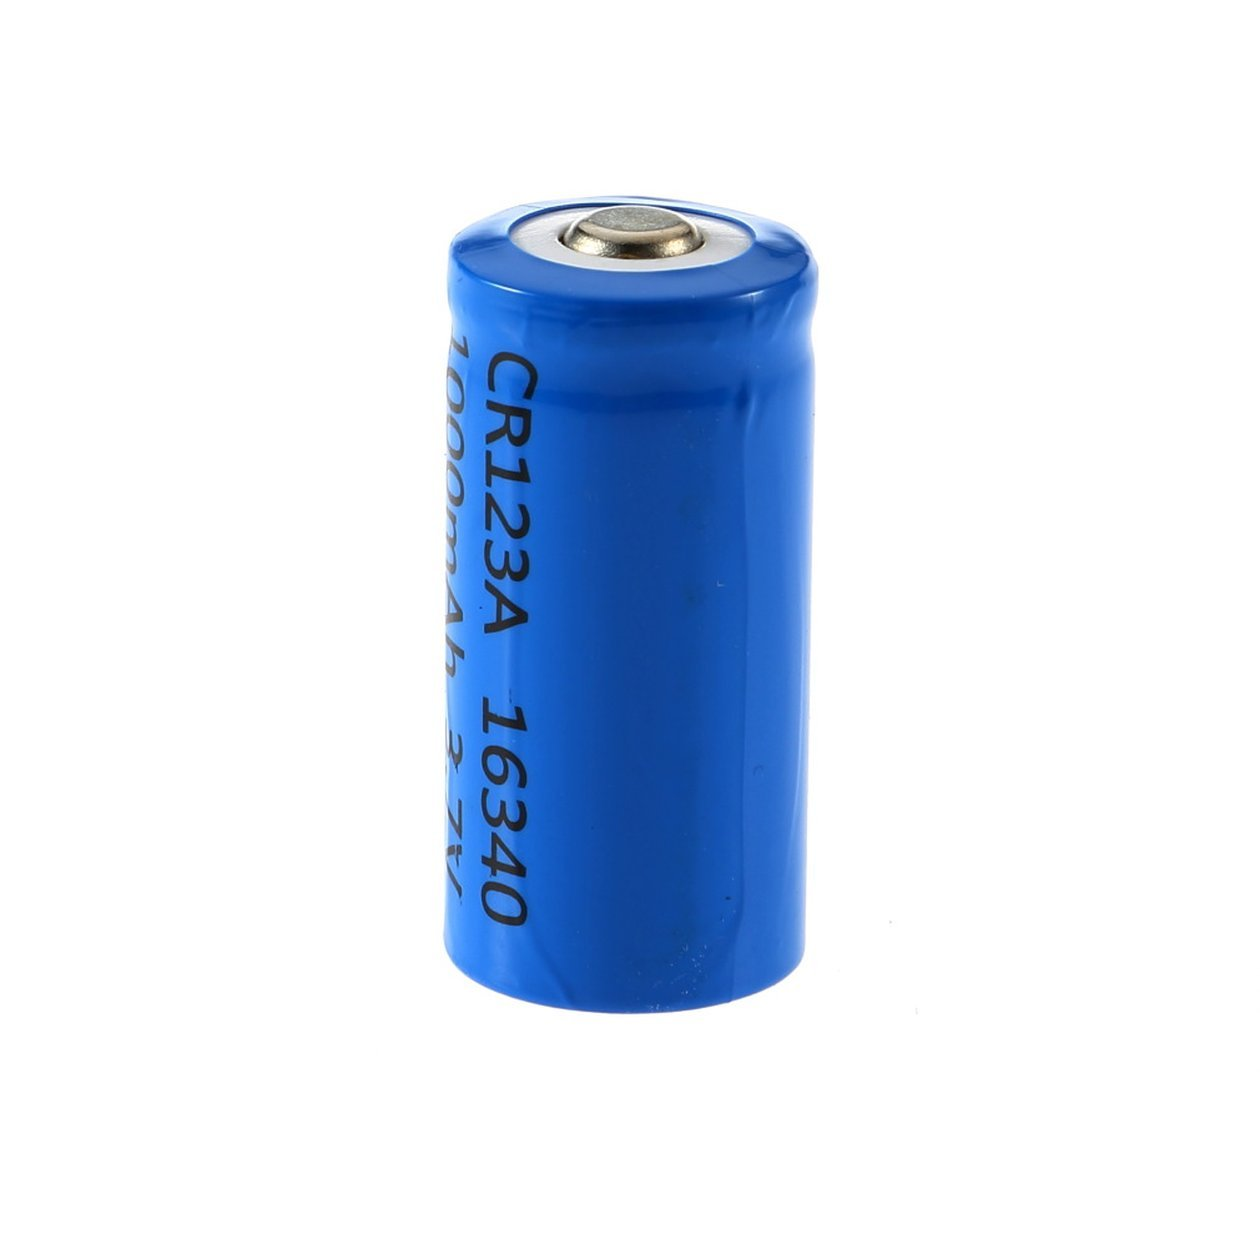 3.7V 1000mAh CR123A 16340 Li-ion Rechargeable Flashlight Battery Blue Shell Torch Batteries Replacement Tool Dupca